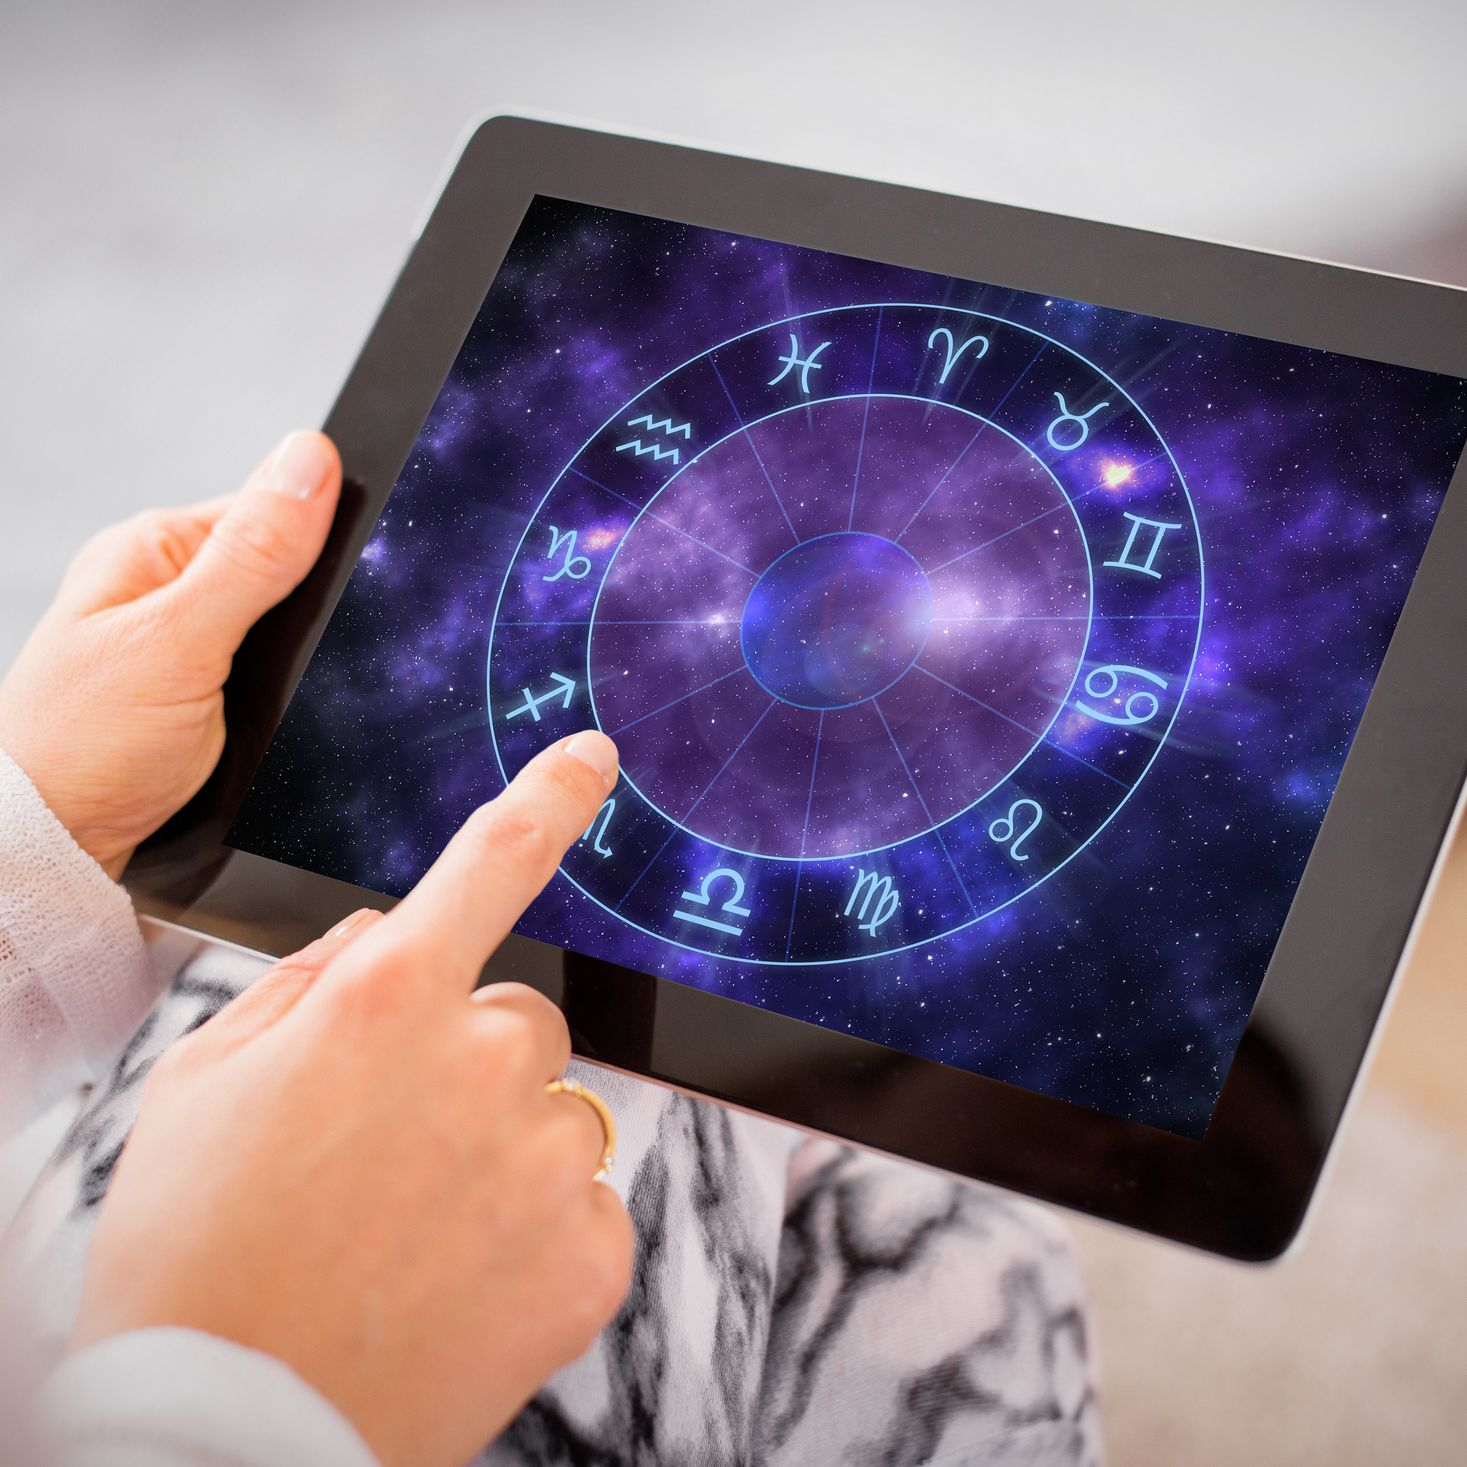 Astrology chart relationship compatibility